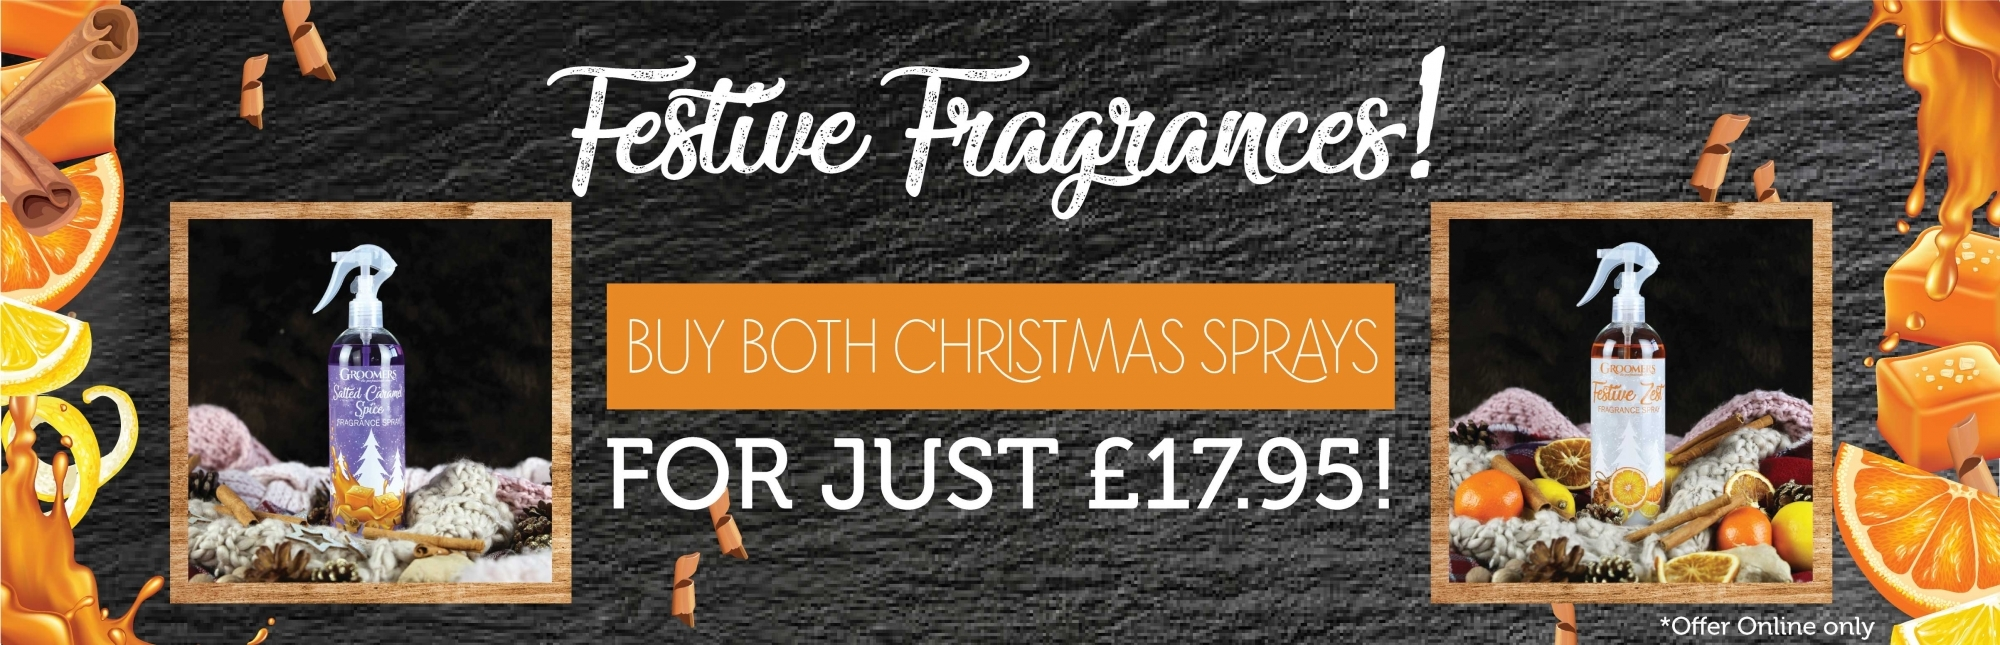 Buy Both Christmas Sprays For Just £17.95!